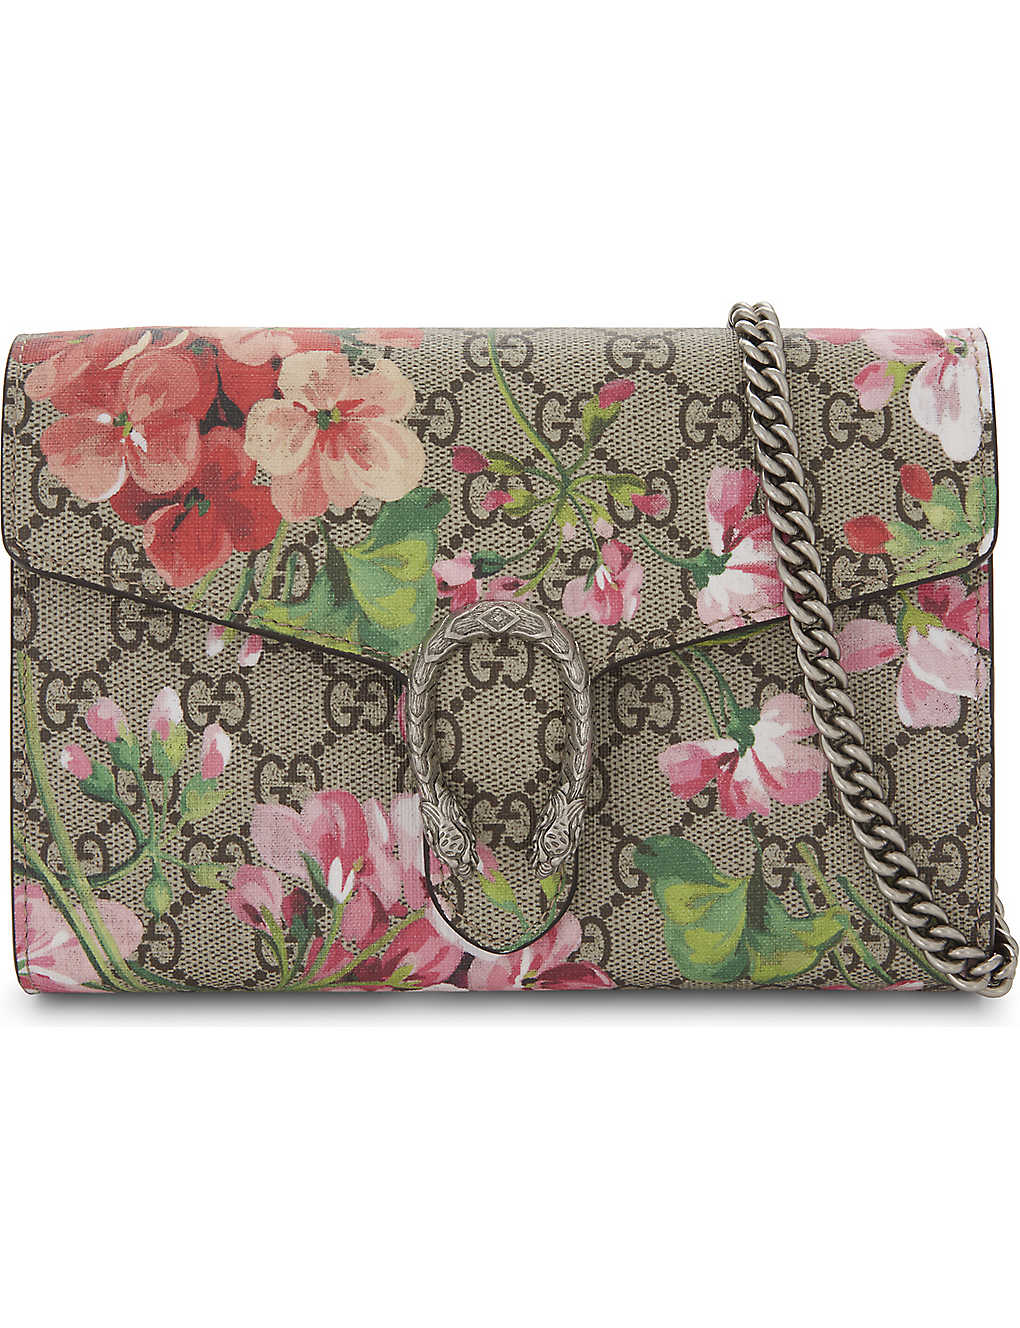 a62c96a813e6 GUCCI - Dionysus GG Supreme floral-print wallet-on-chain ...